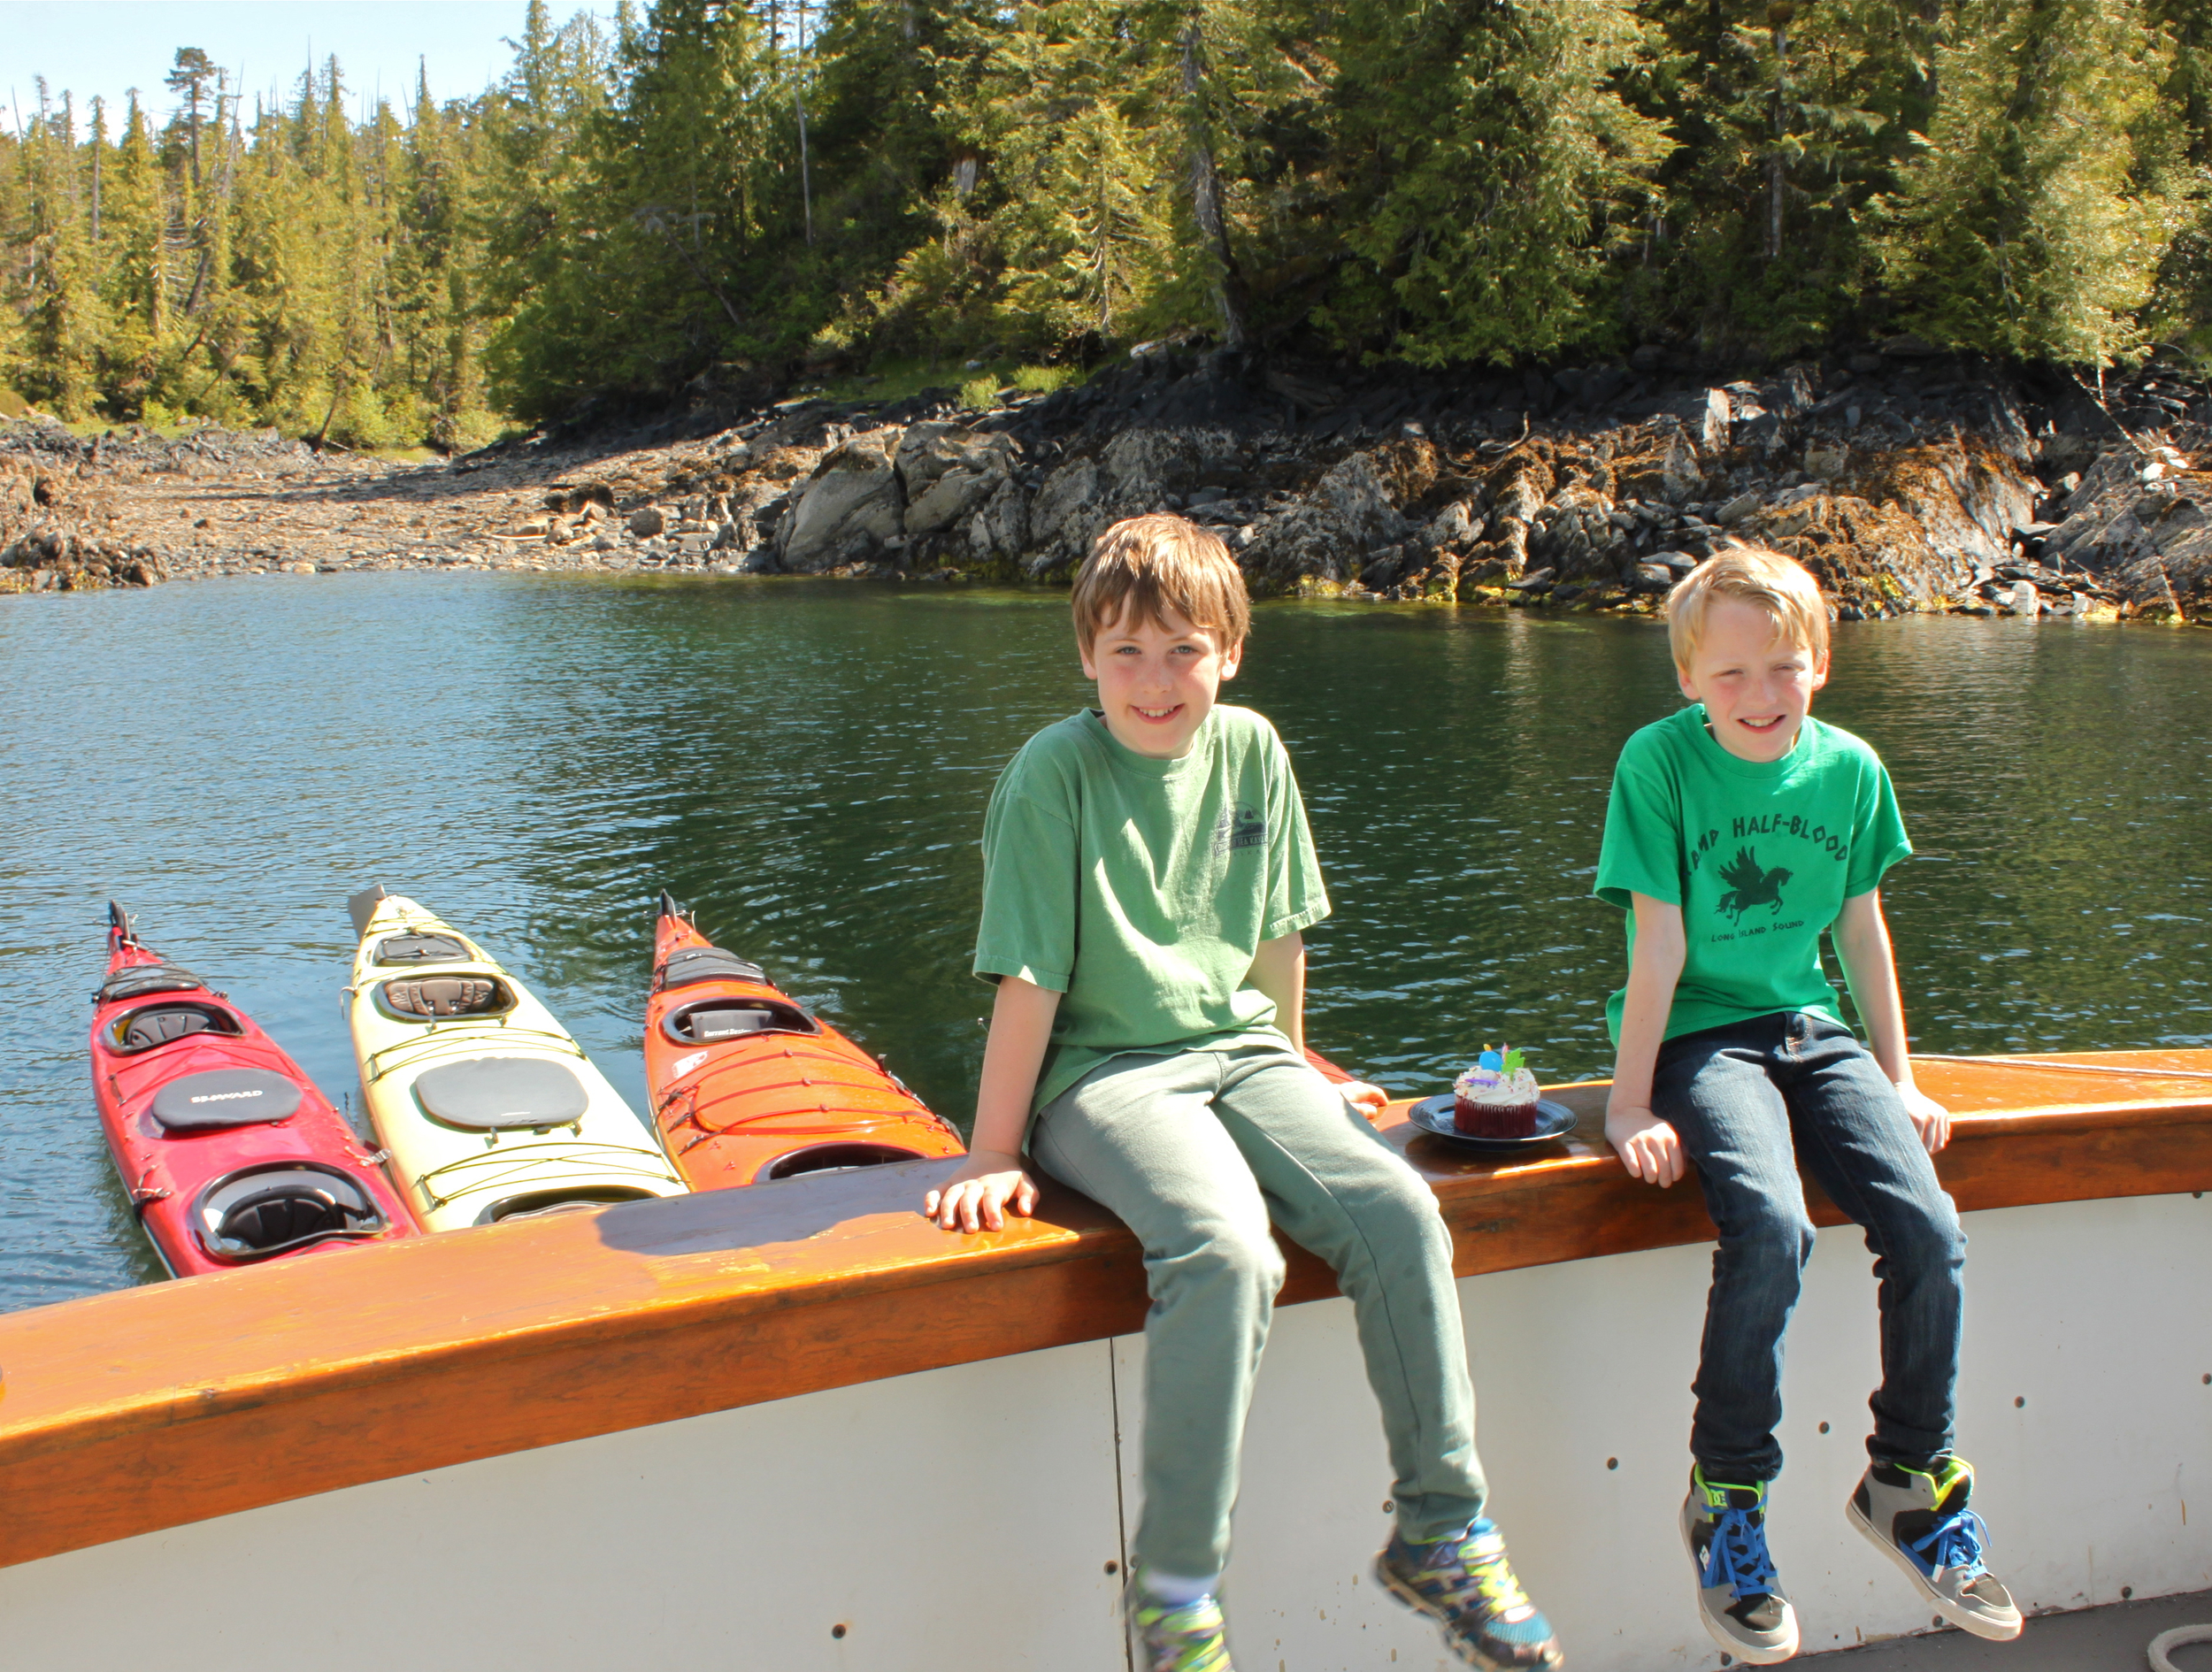 9 years old, now Declan & Clancy help Greg bring the Sea Spree home at the end of the day.